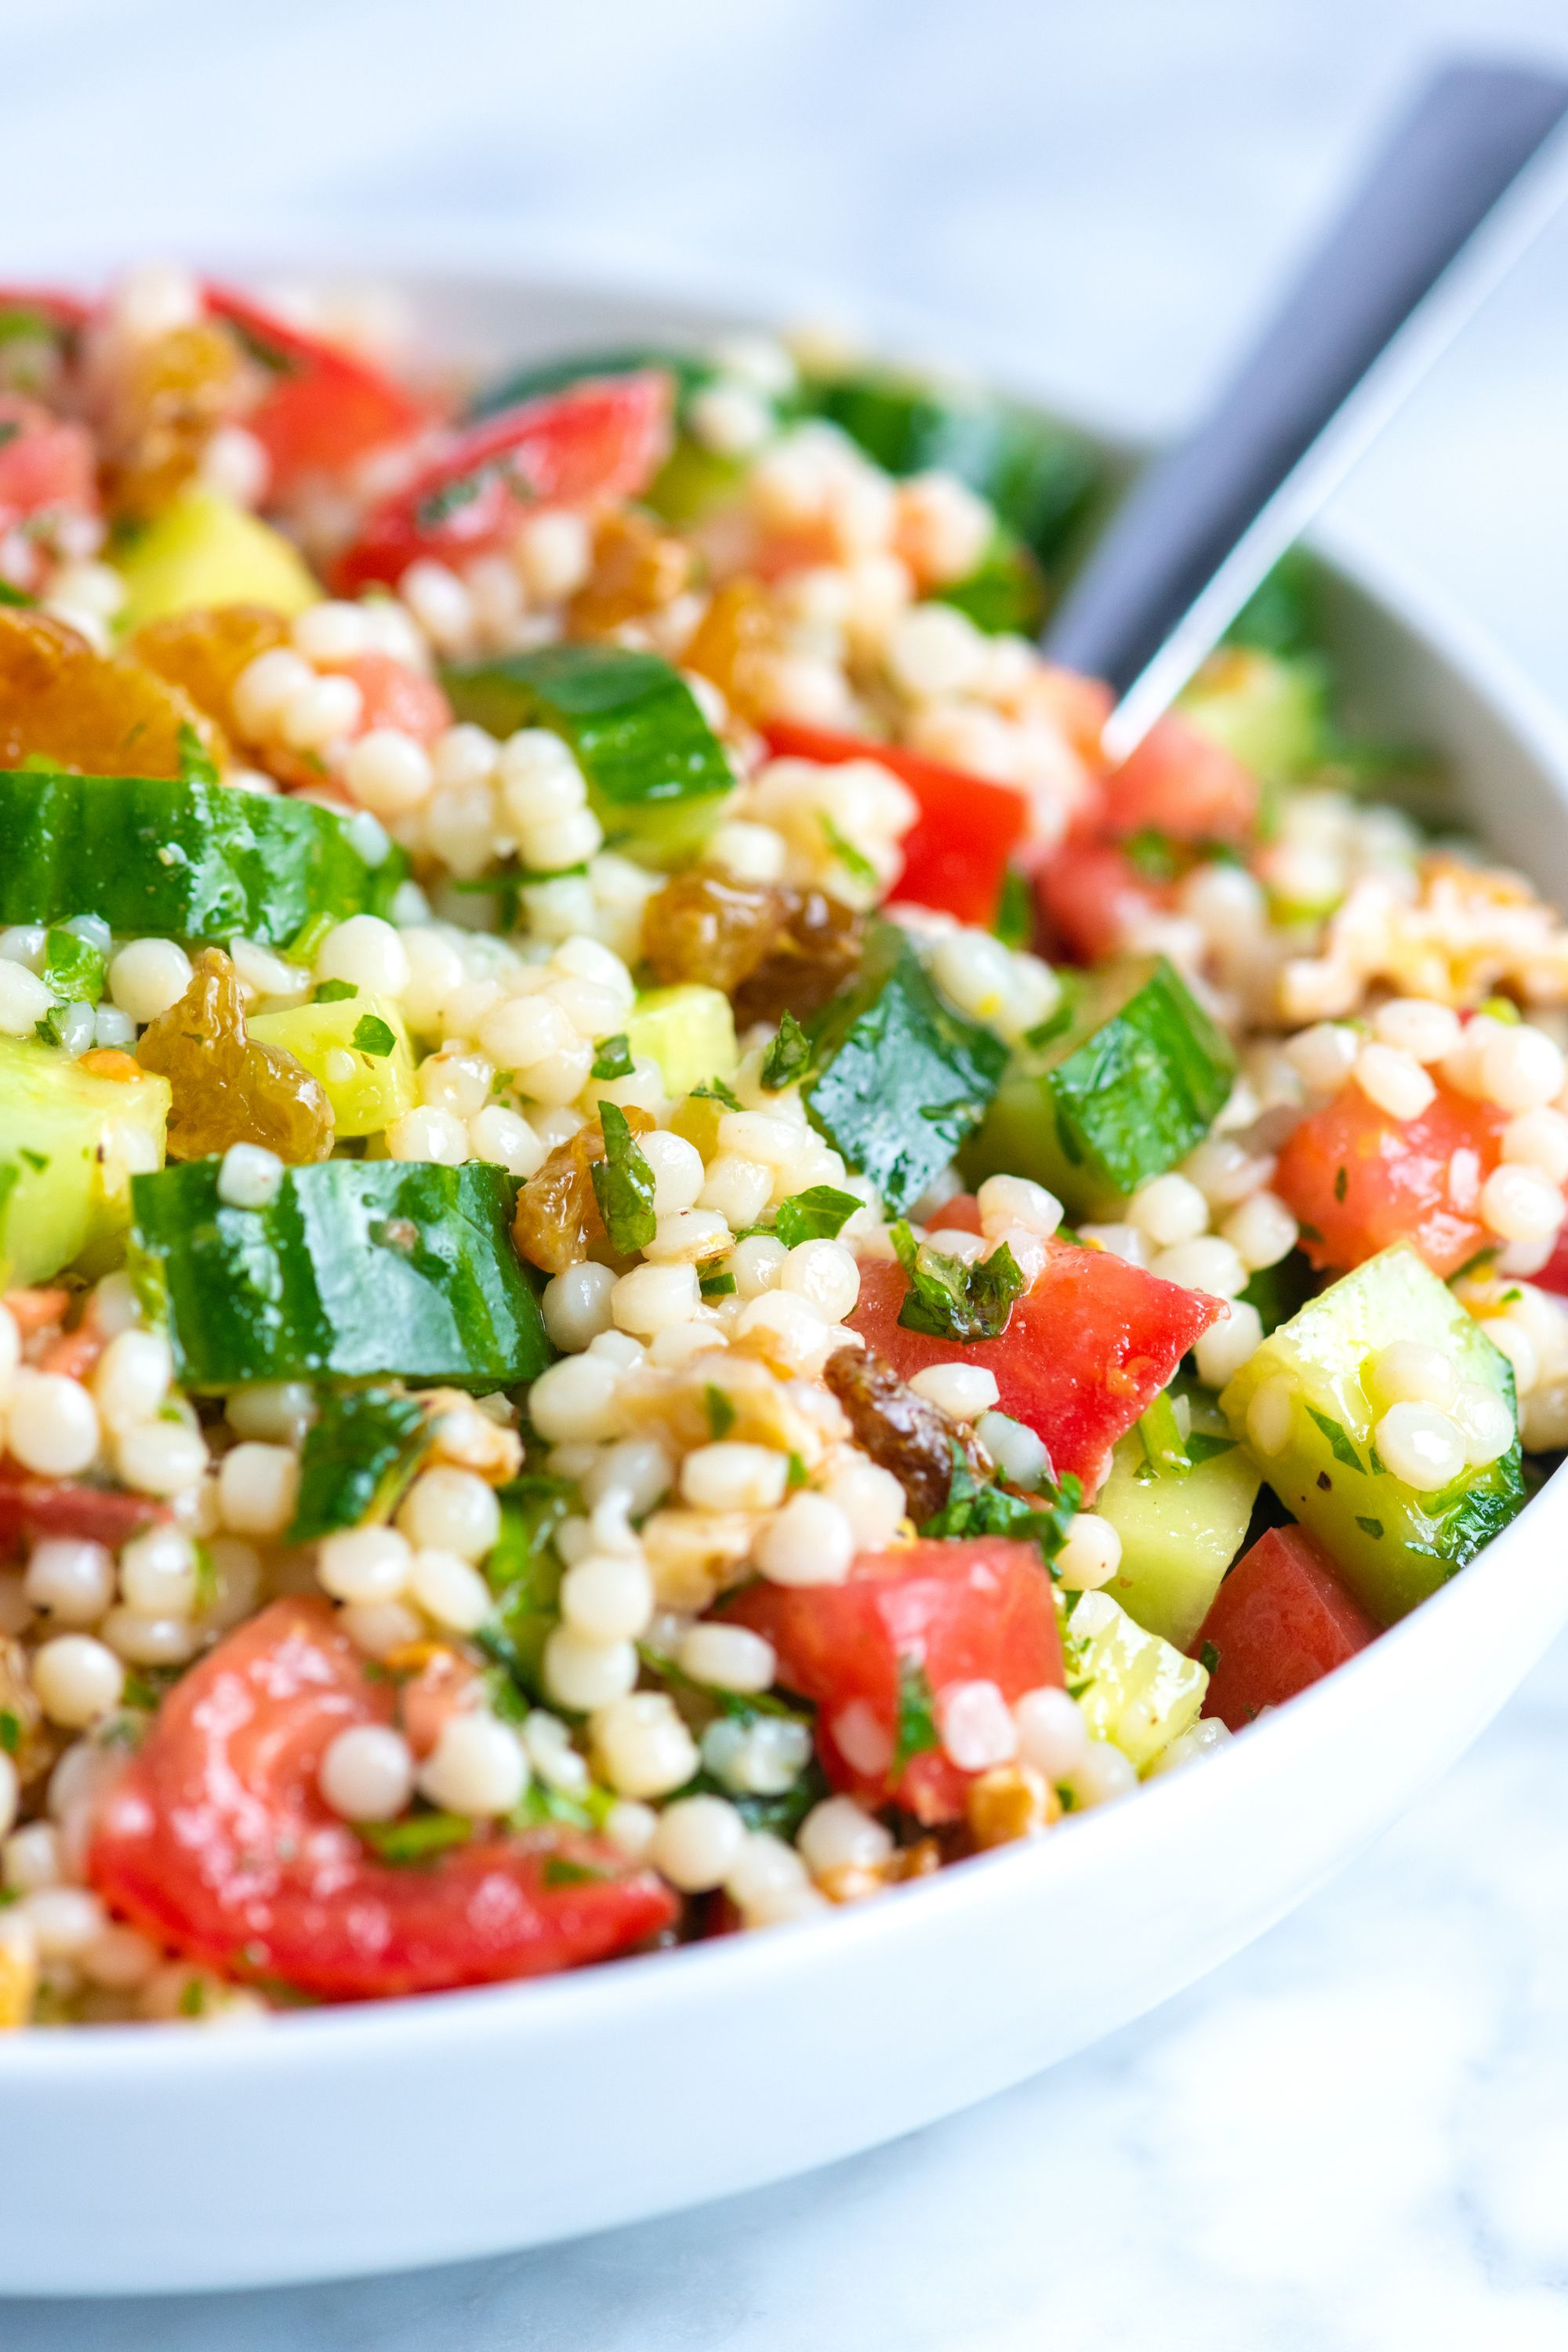 From Our Schools Kitchen to Yours - Couscous Salad, Grocery, Anneliese Schools - LIESAS